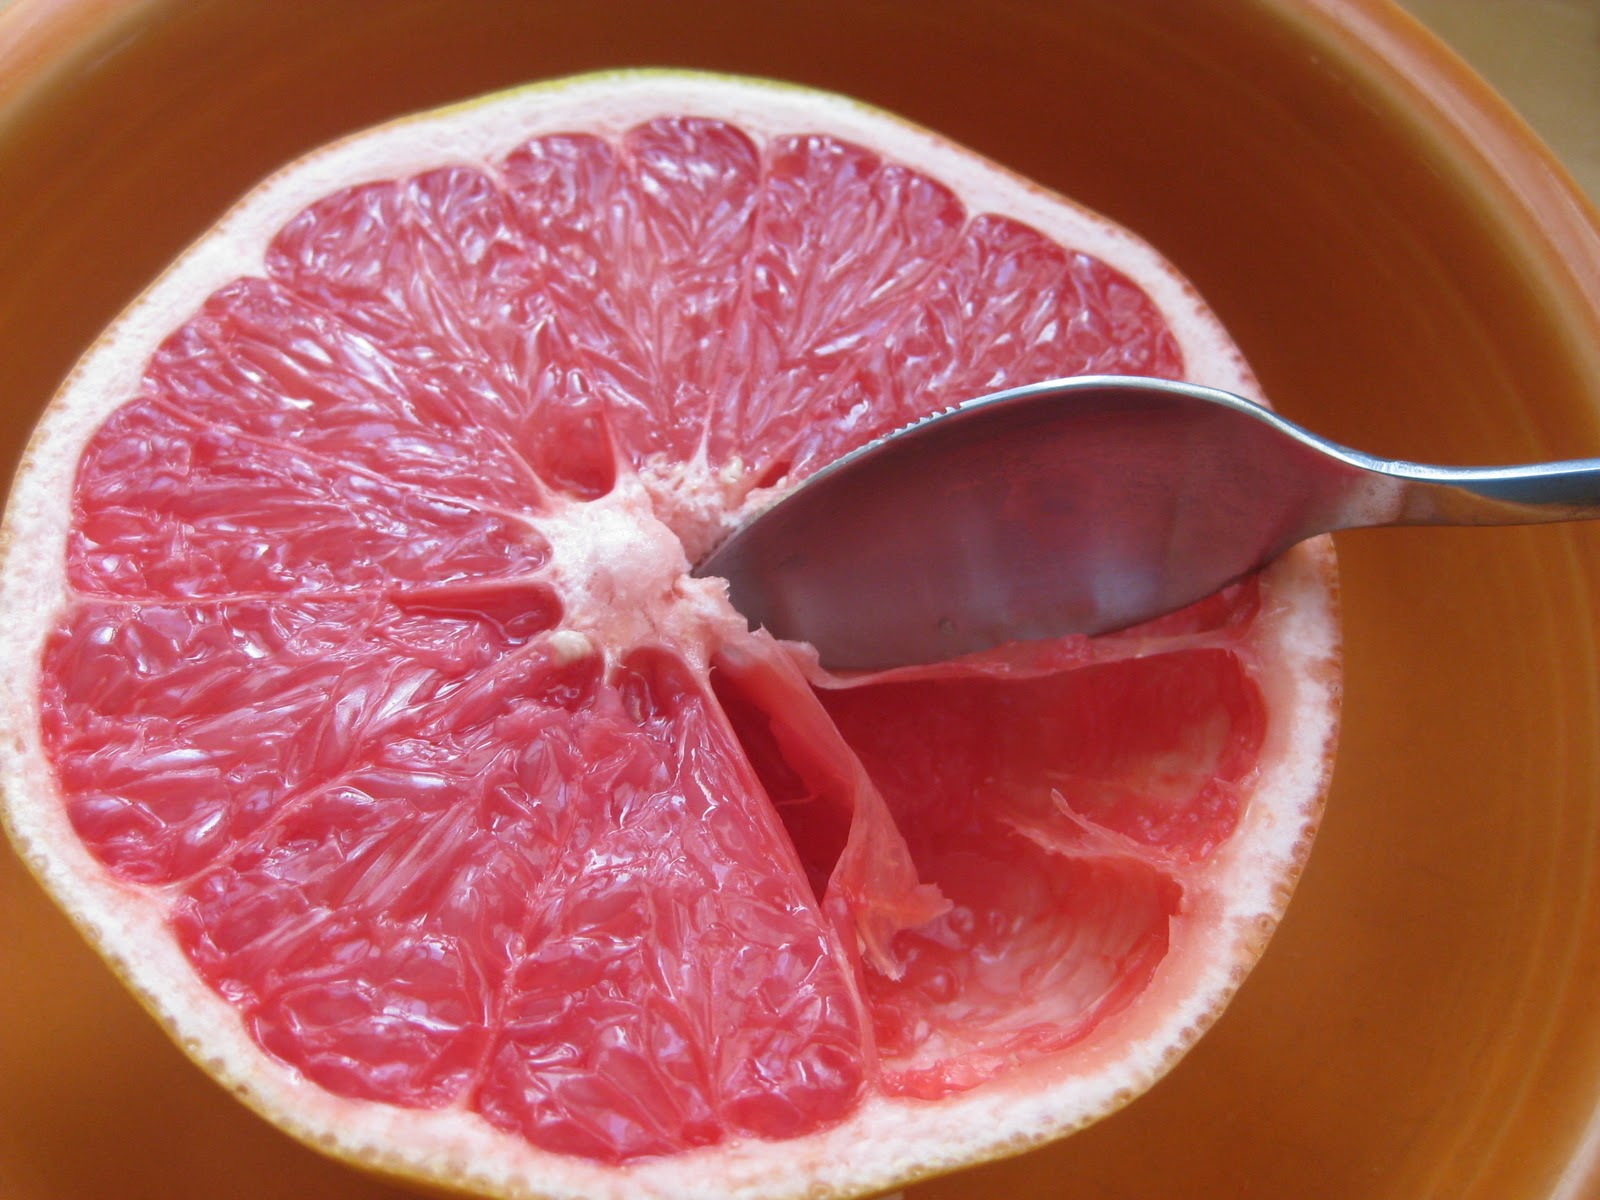 excited for grapefruit season to be here again! The Texas grapefruits ...